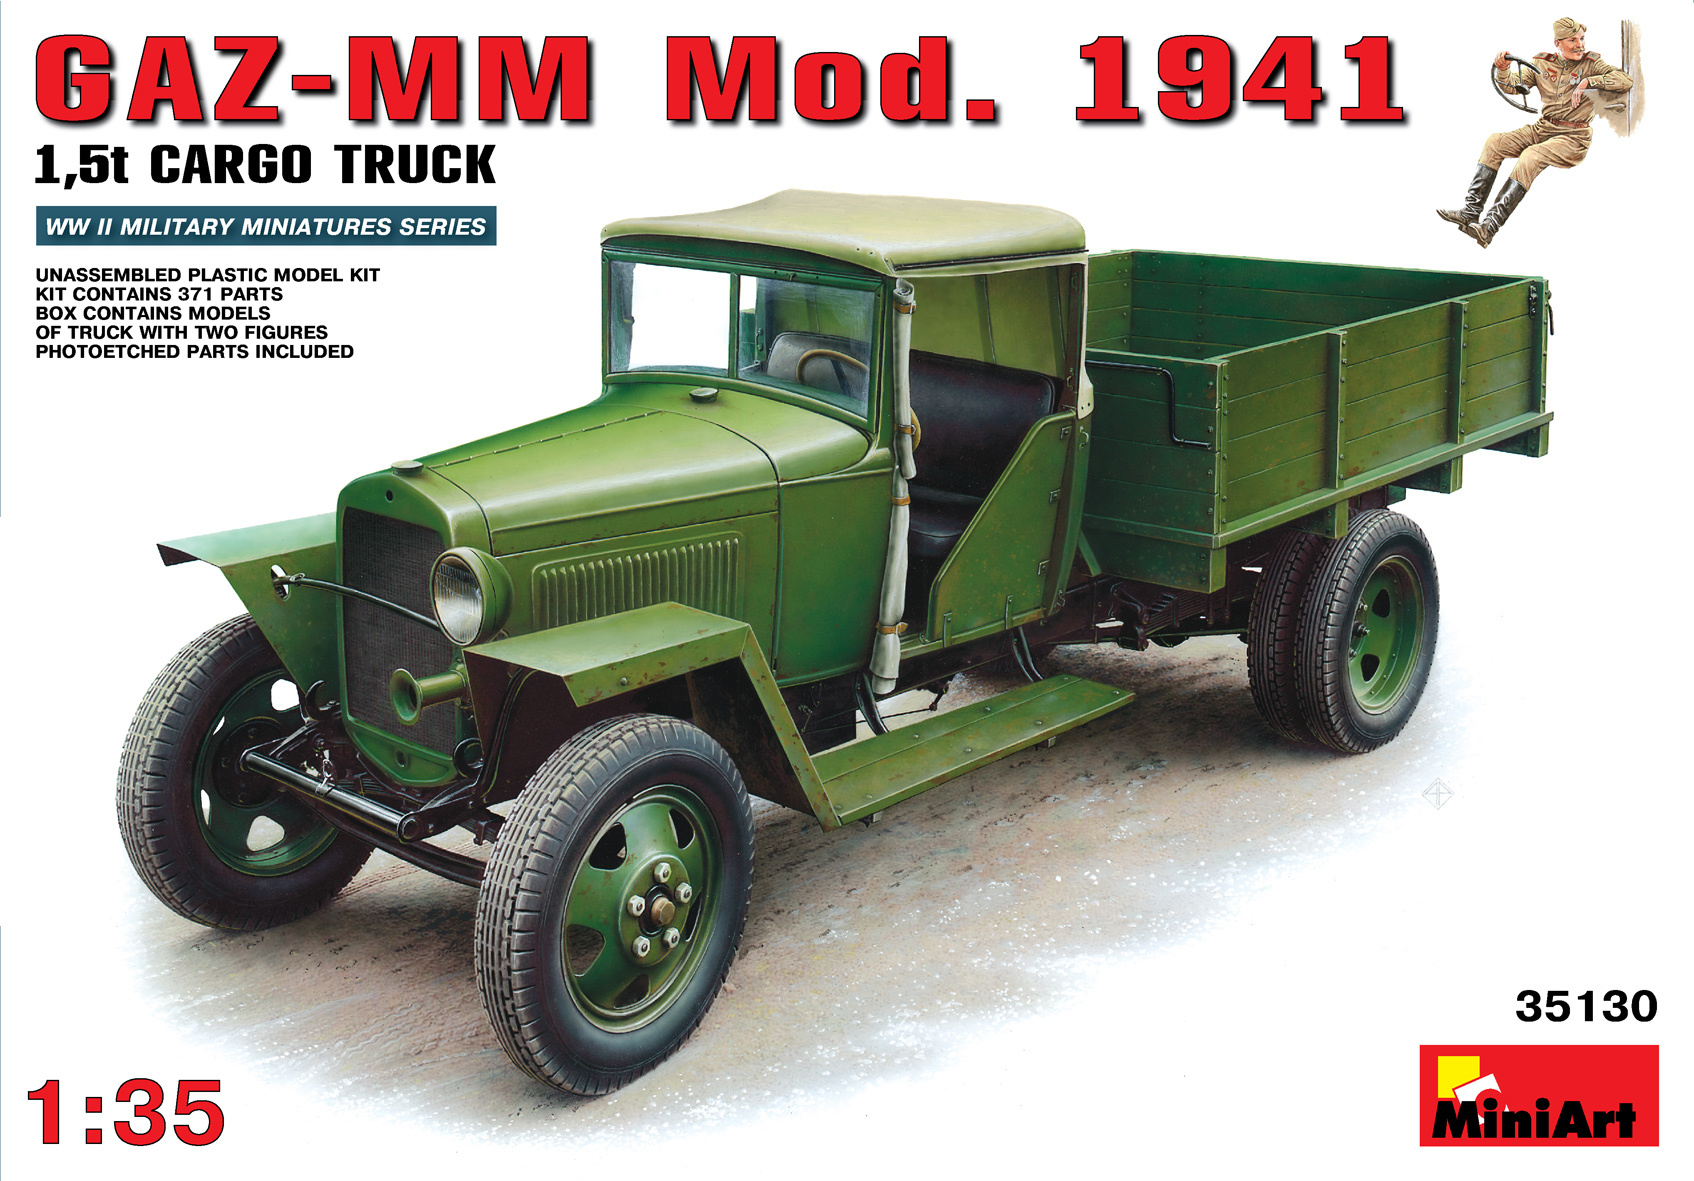 MiniArt Gaz-Mm. Model 1941 Cargo Truck - Scale 1/35 - Mini Art - MIT35130